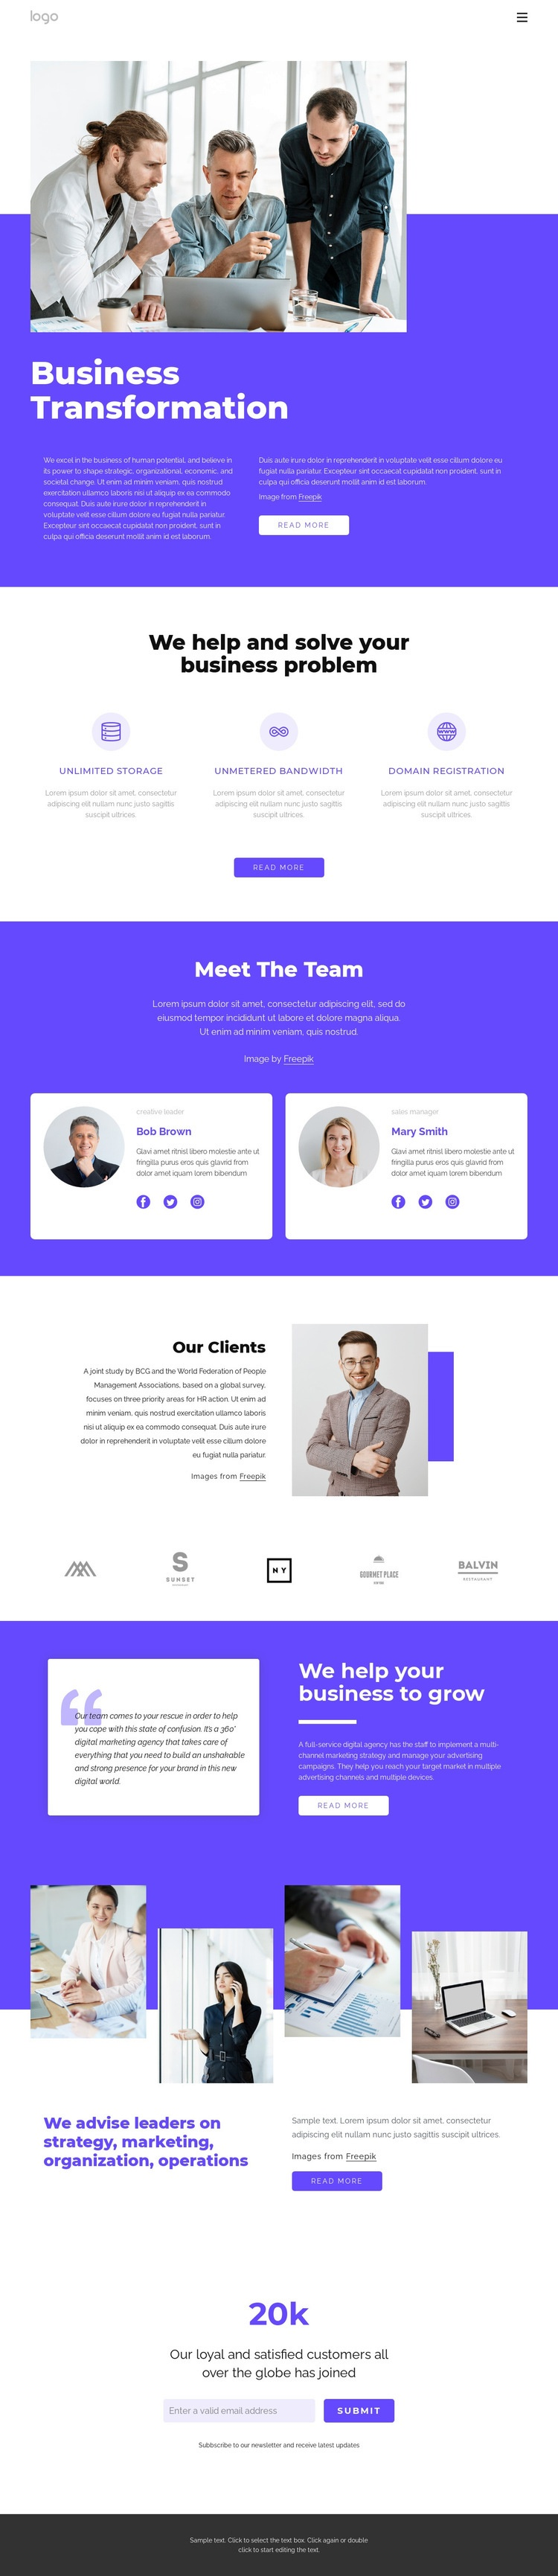 Global management consulting firm Web Page Design